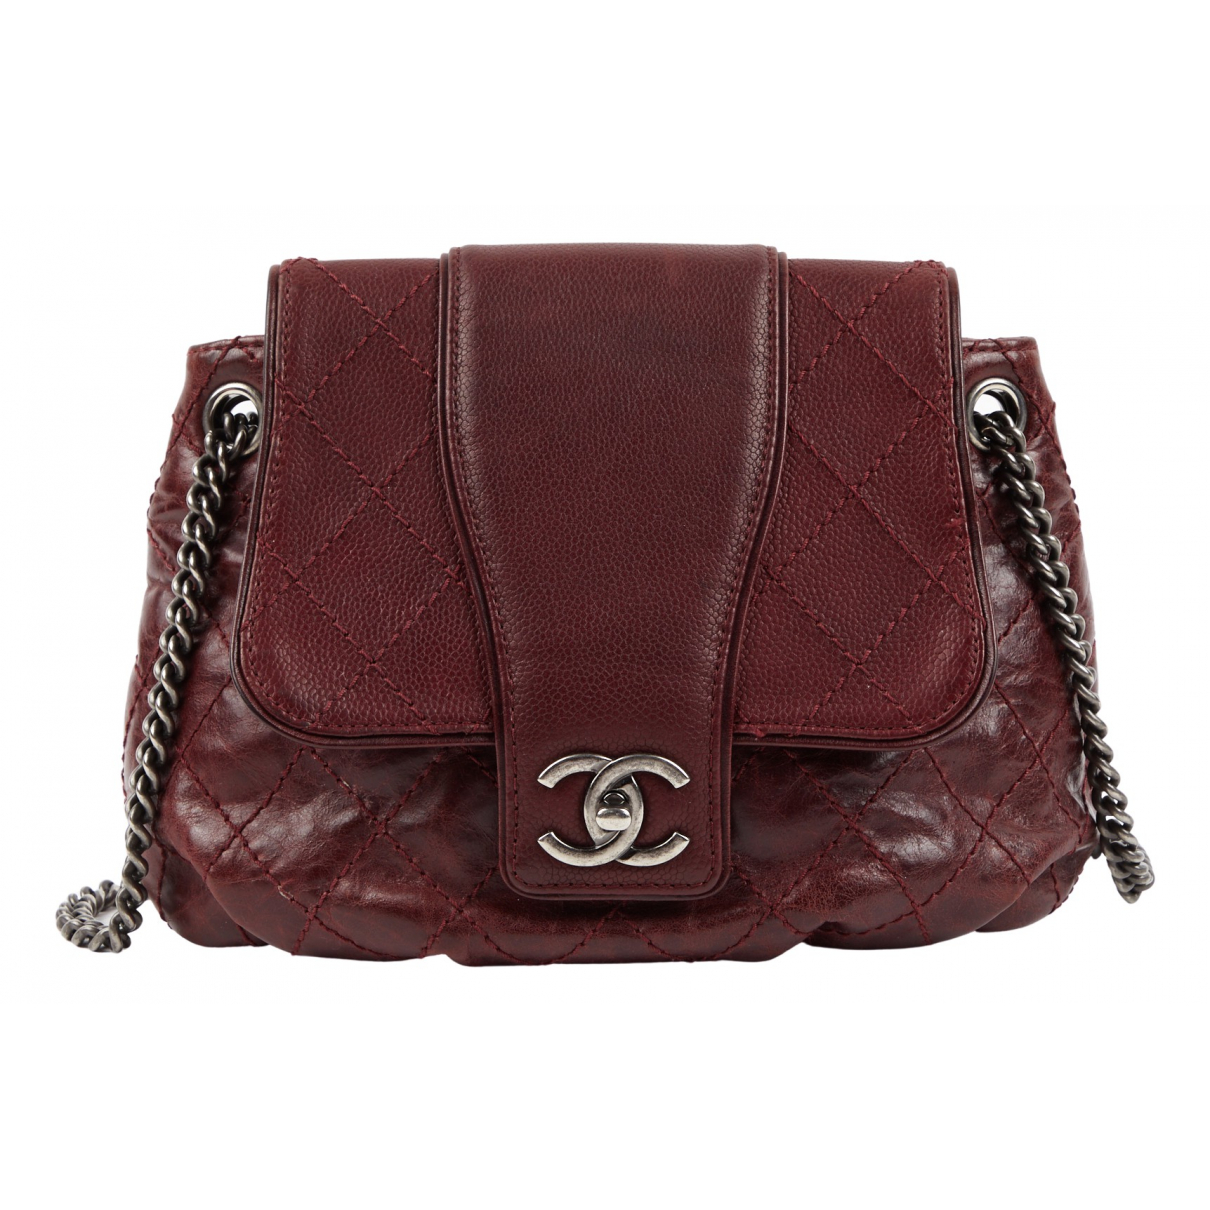 Chanel \N Burgundy Leather handbag for Women \N